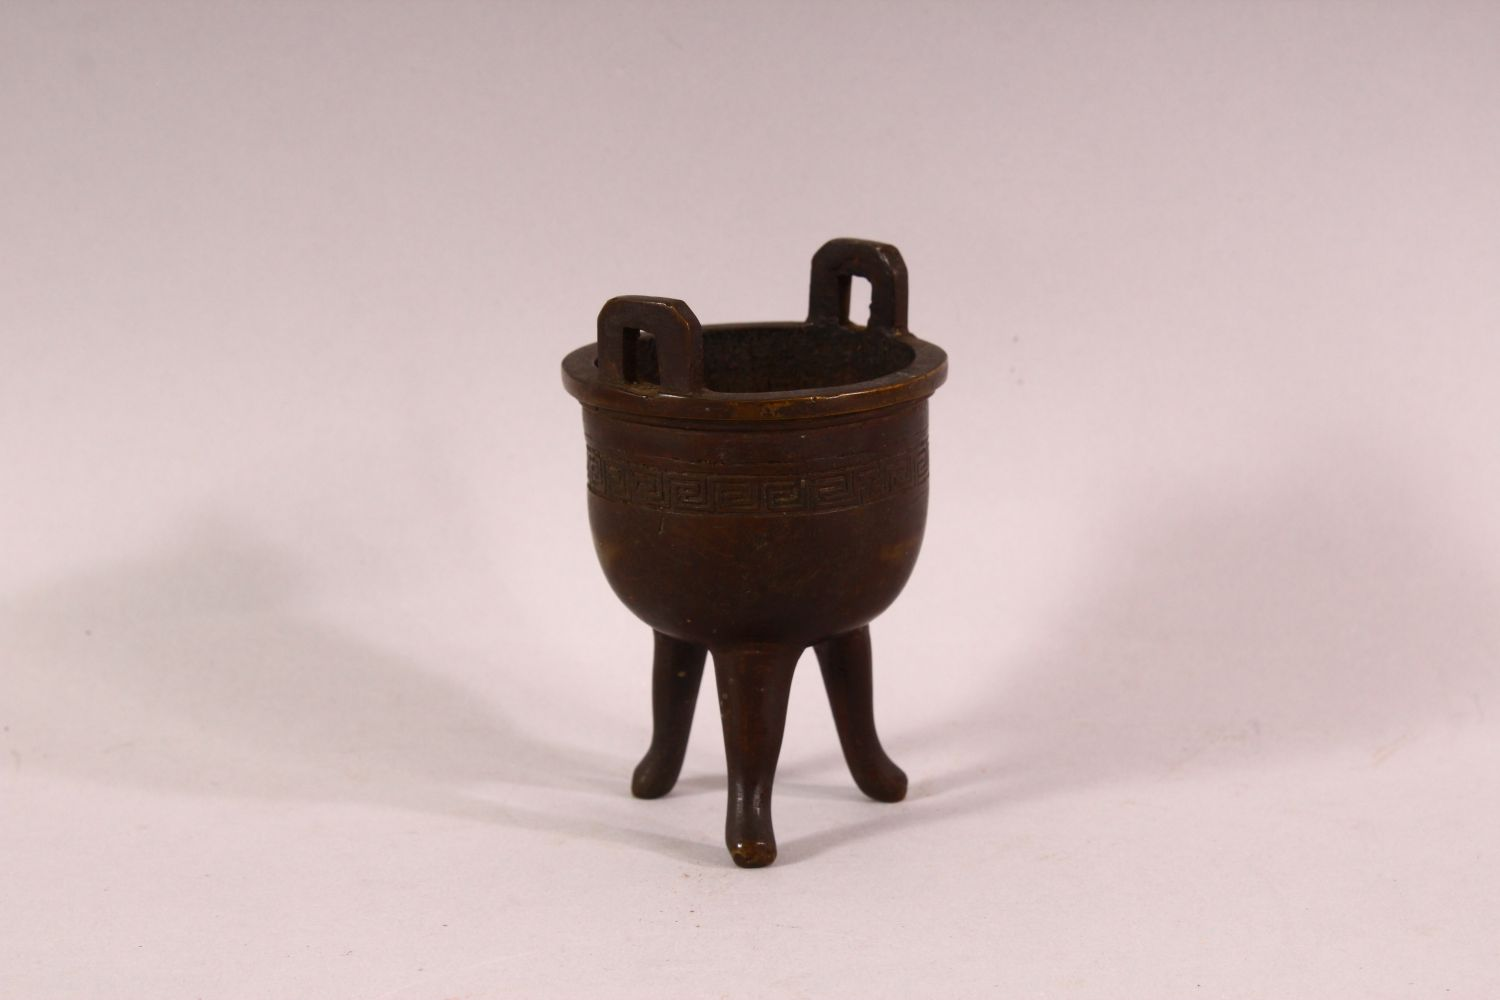 A SMALL 19TH CENTURY CHINESE TWIN HANDLE TRIPOD CENSER, the body with greek key decoration, 9.5cm - Image 2 of 5